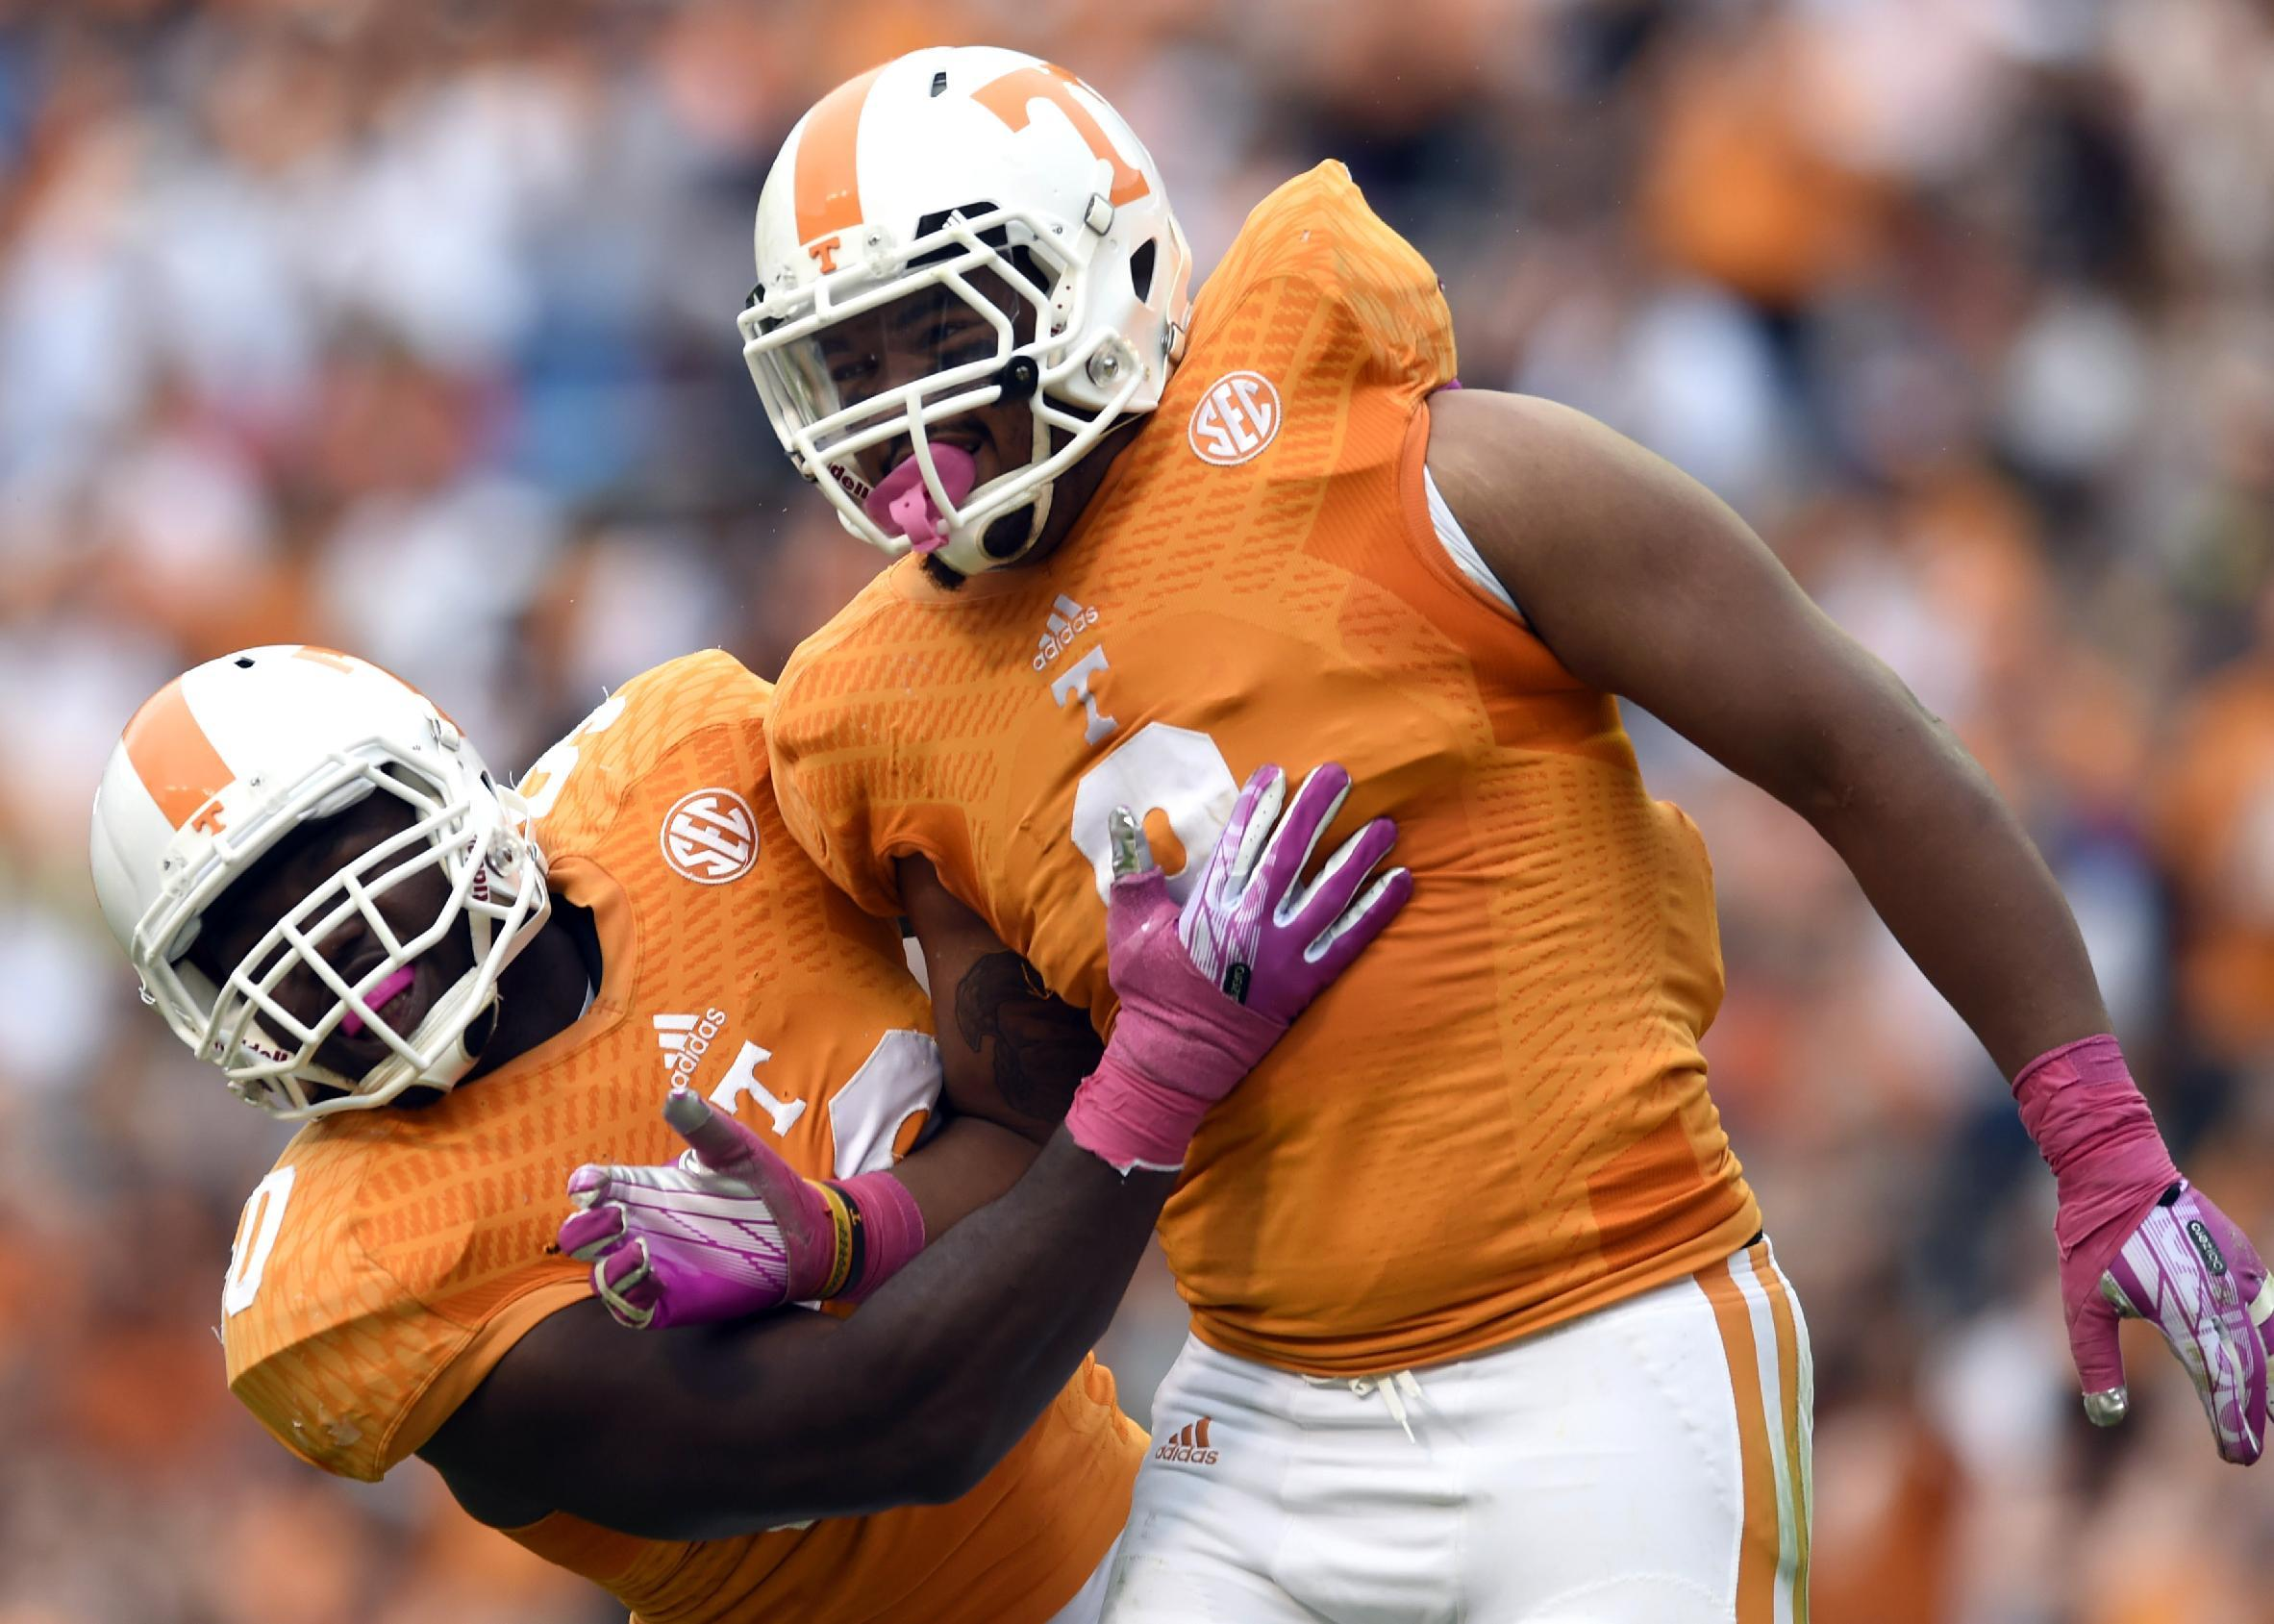 Vols seek to build on momentum with winning season